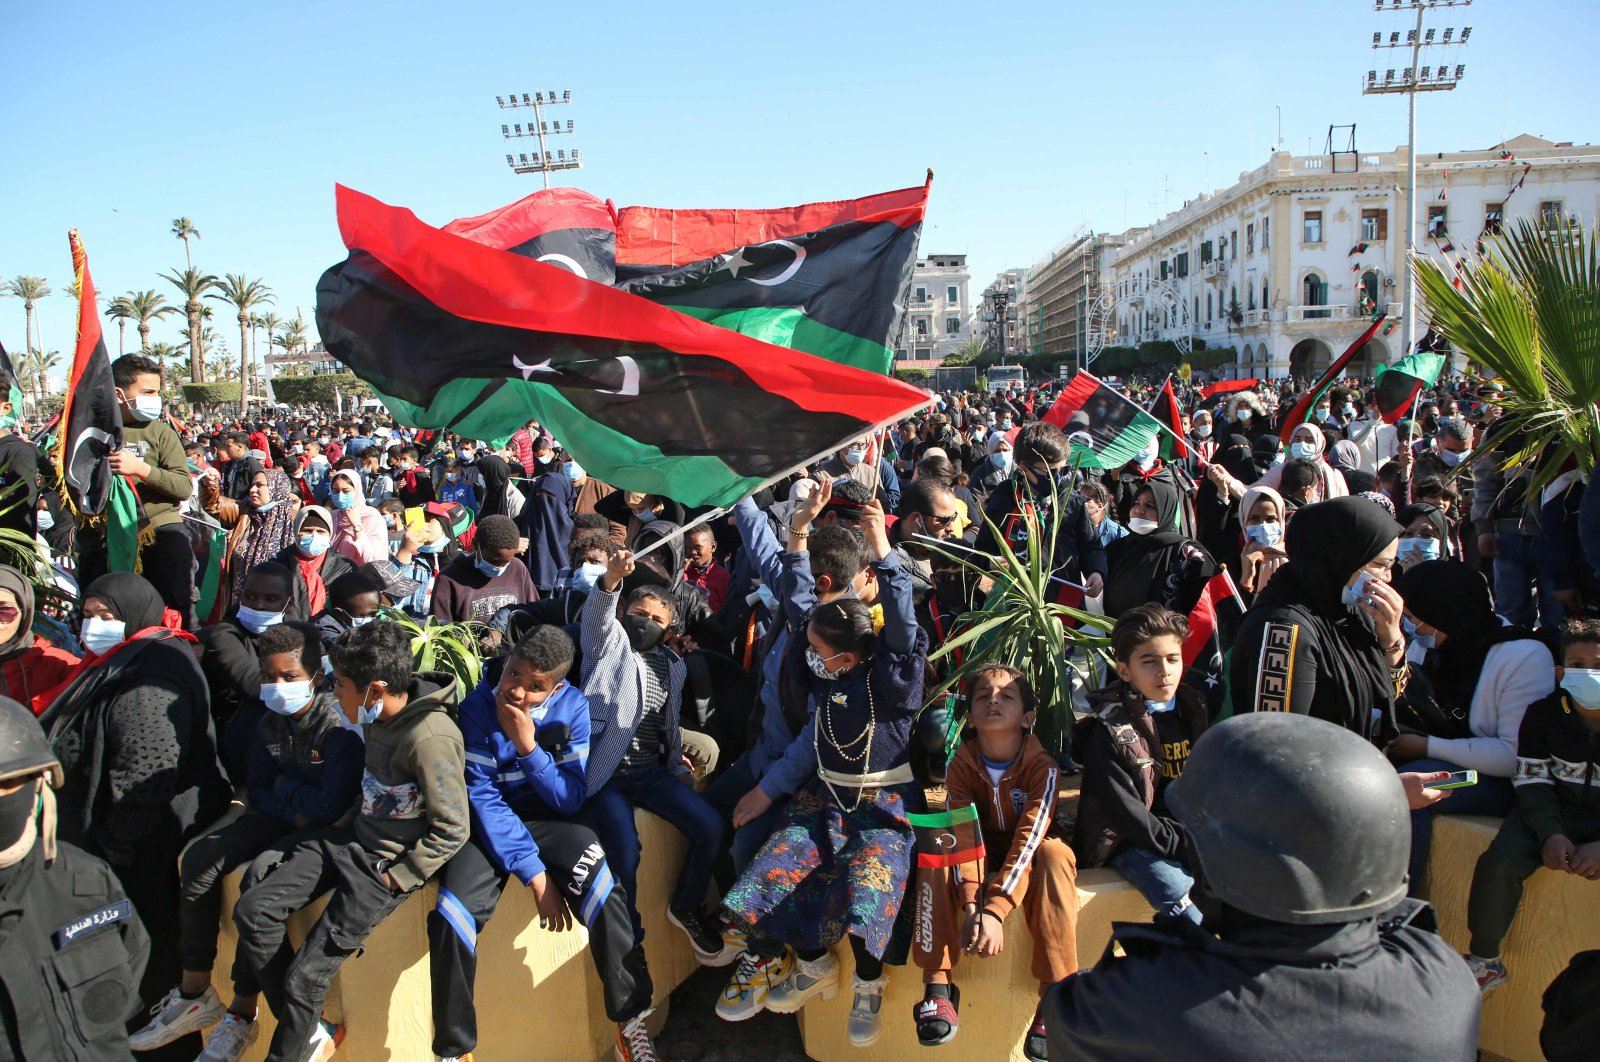 Libyans wave national flags as they gather to celebrate the 10th anniversary of the 2011 revolution in Martyr's Square, Tripoli, Libya, Feb. 17, 2021. (AFP Photo)